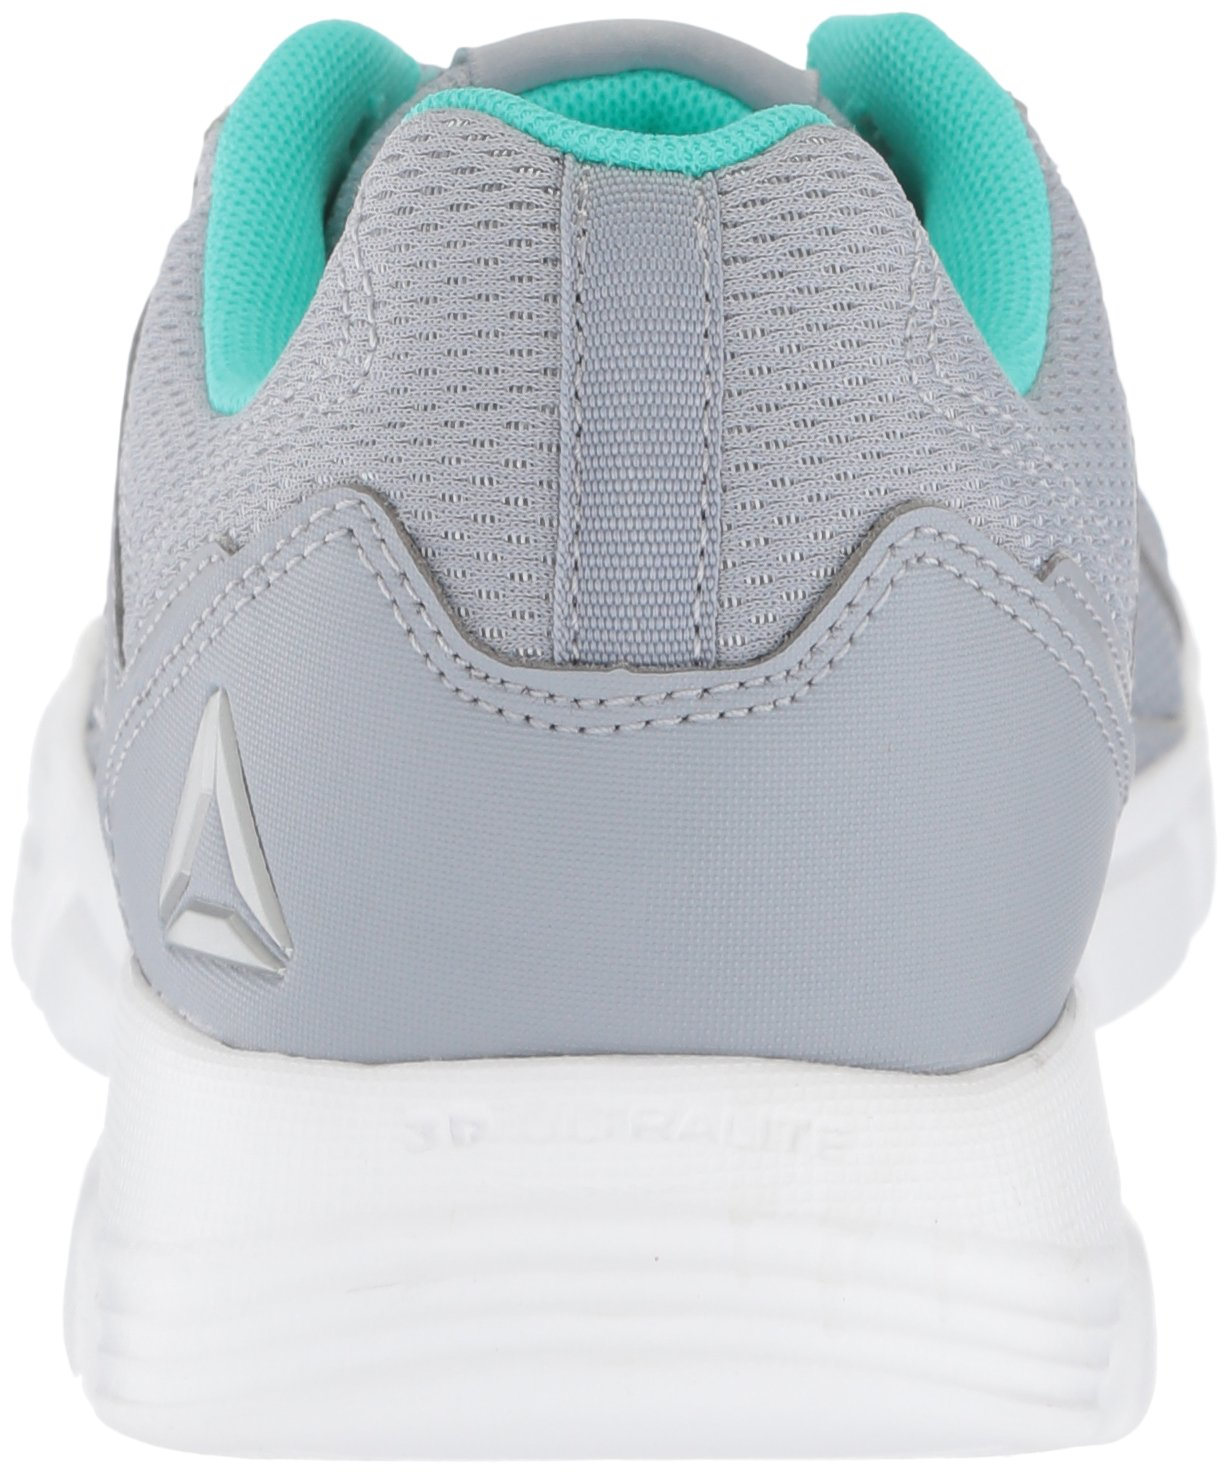 fc910ee0b3e Reebok Trainfusion Nine 3.0 Cross Trainer para mujeres Cool Shadow   White    Silver   Solid Teal